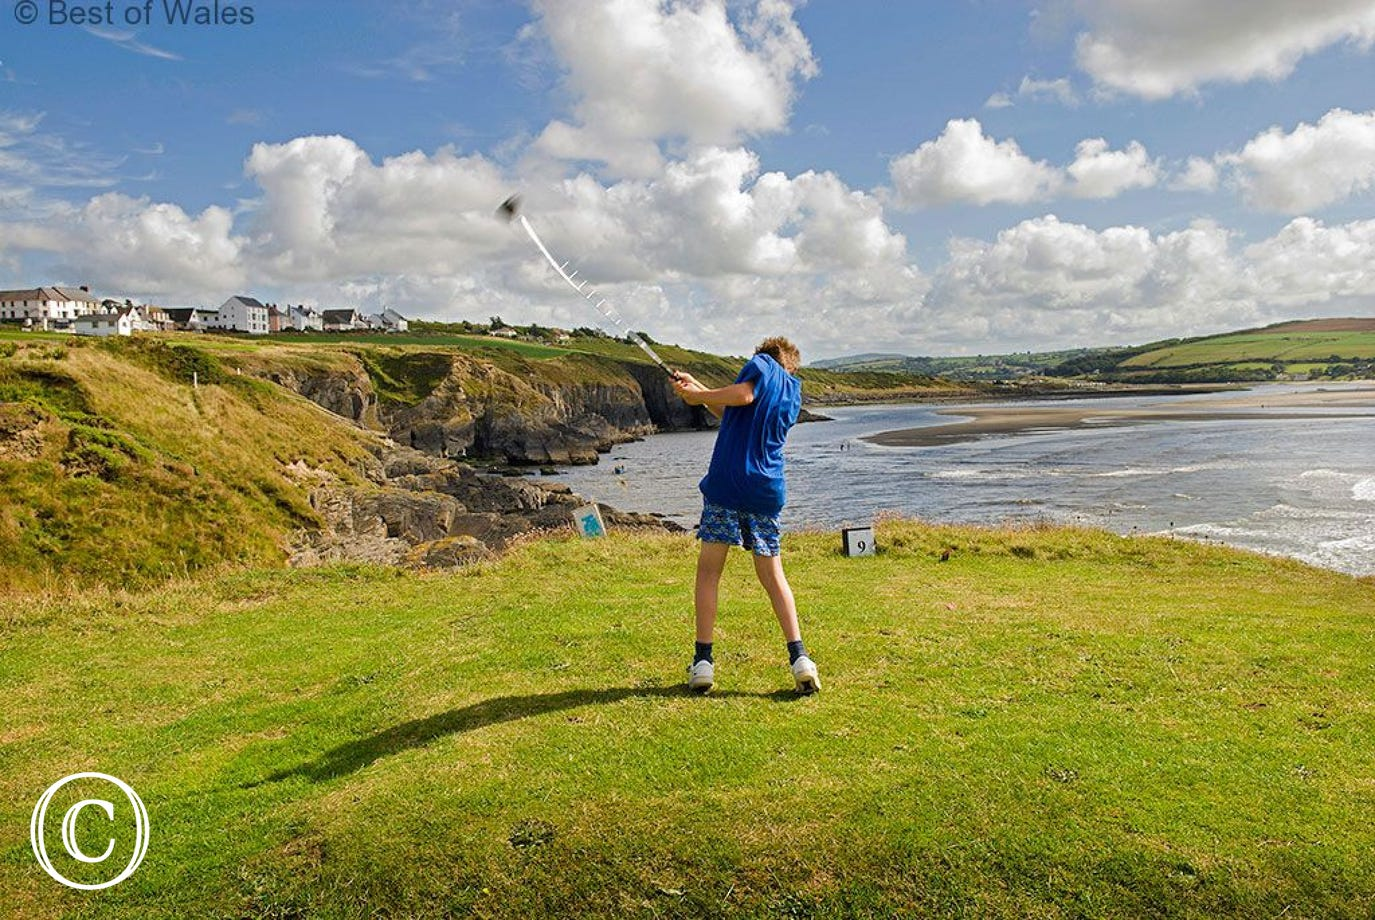 Golf in Cardigan